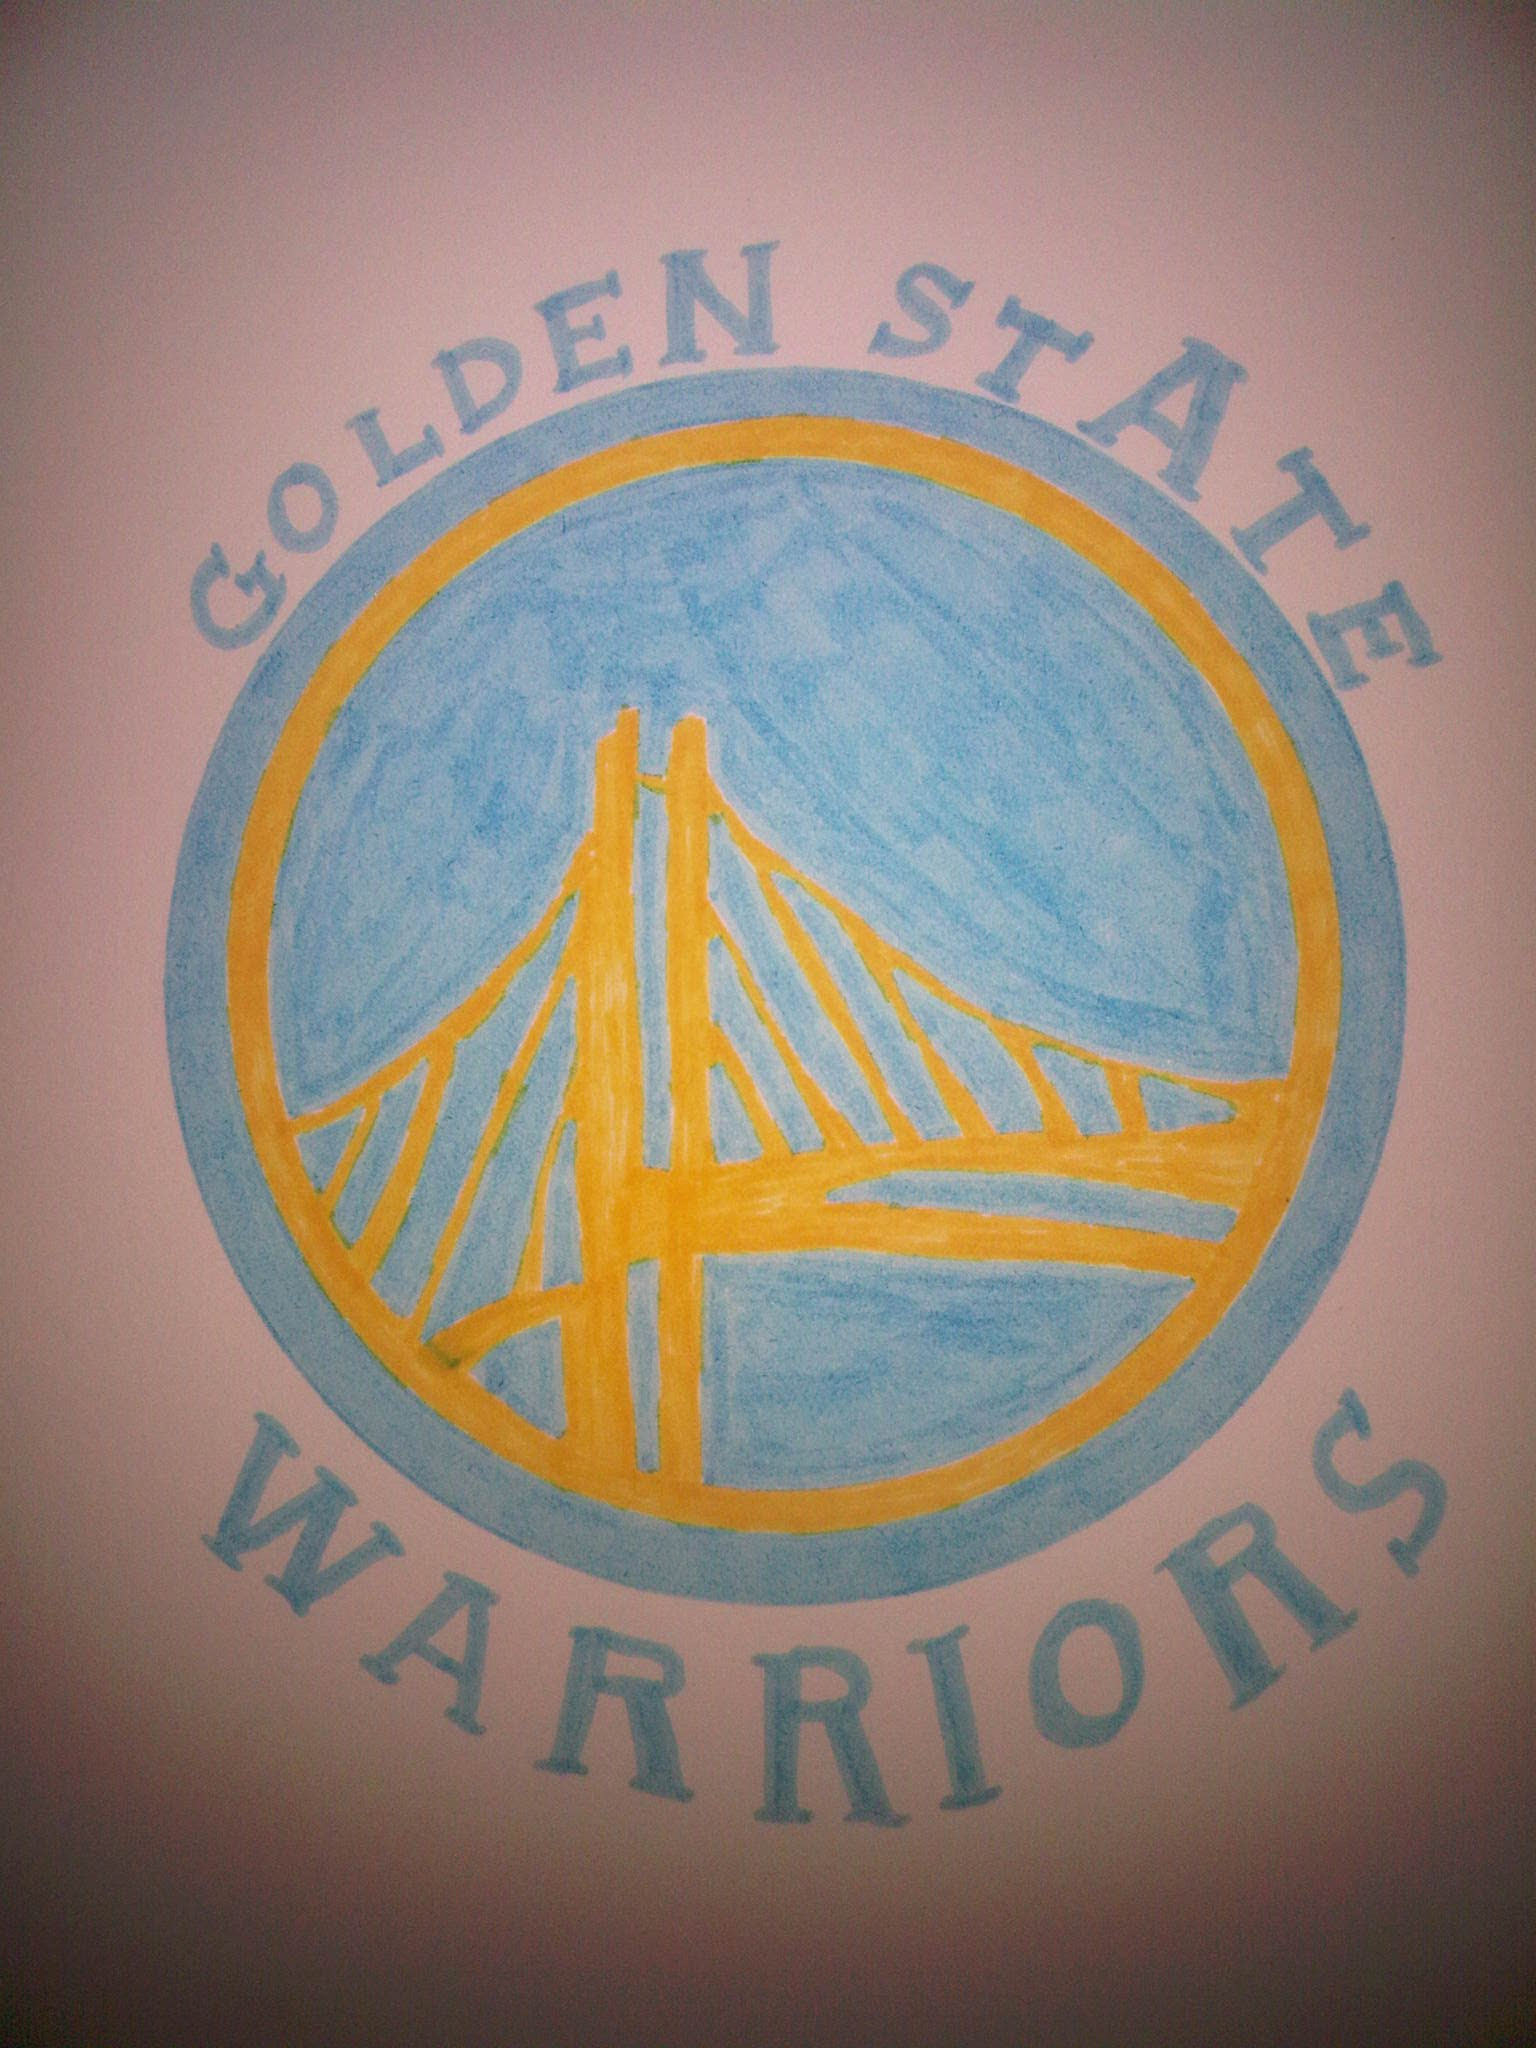 1536x2048 How To Draw The Golden State Warriors Logo